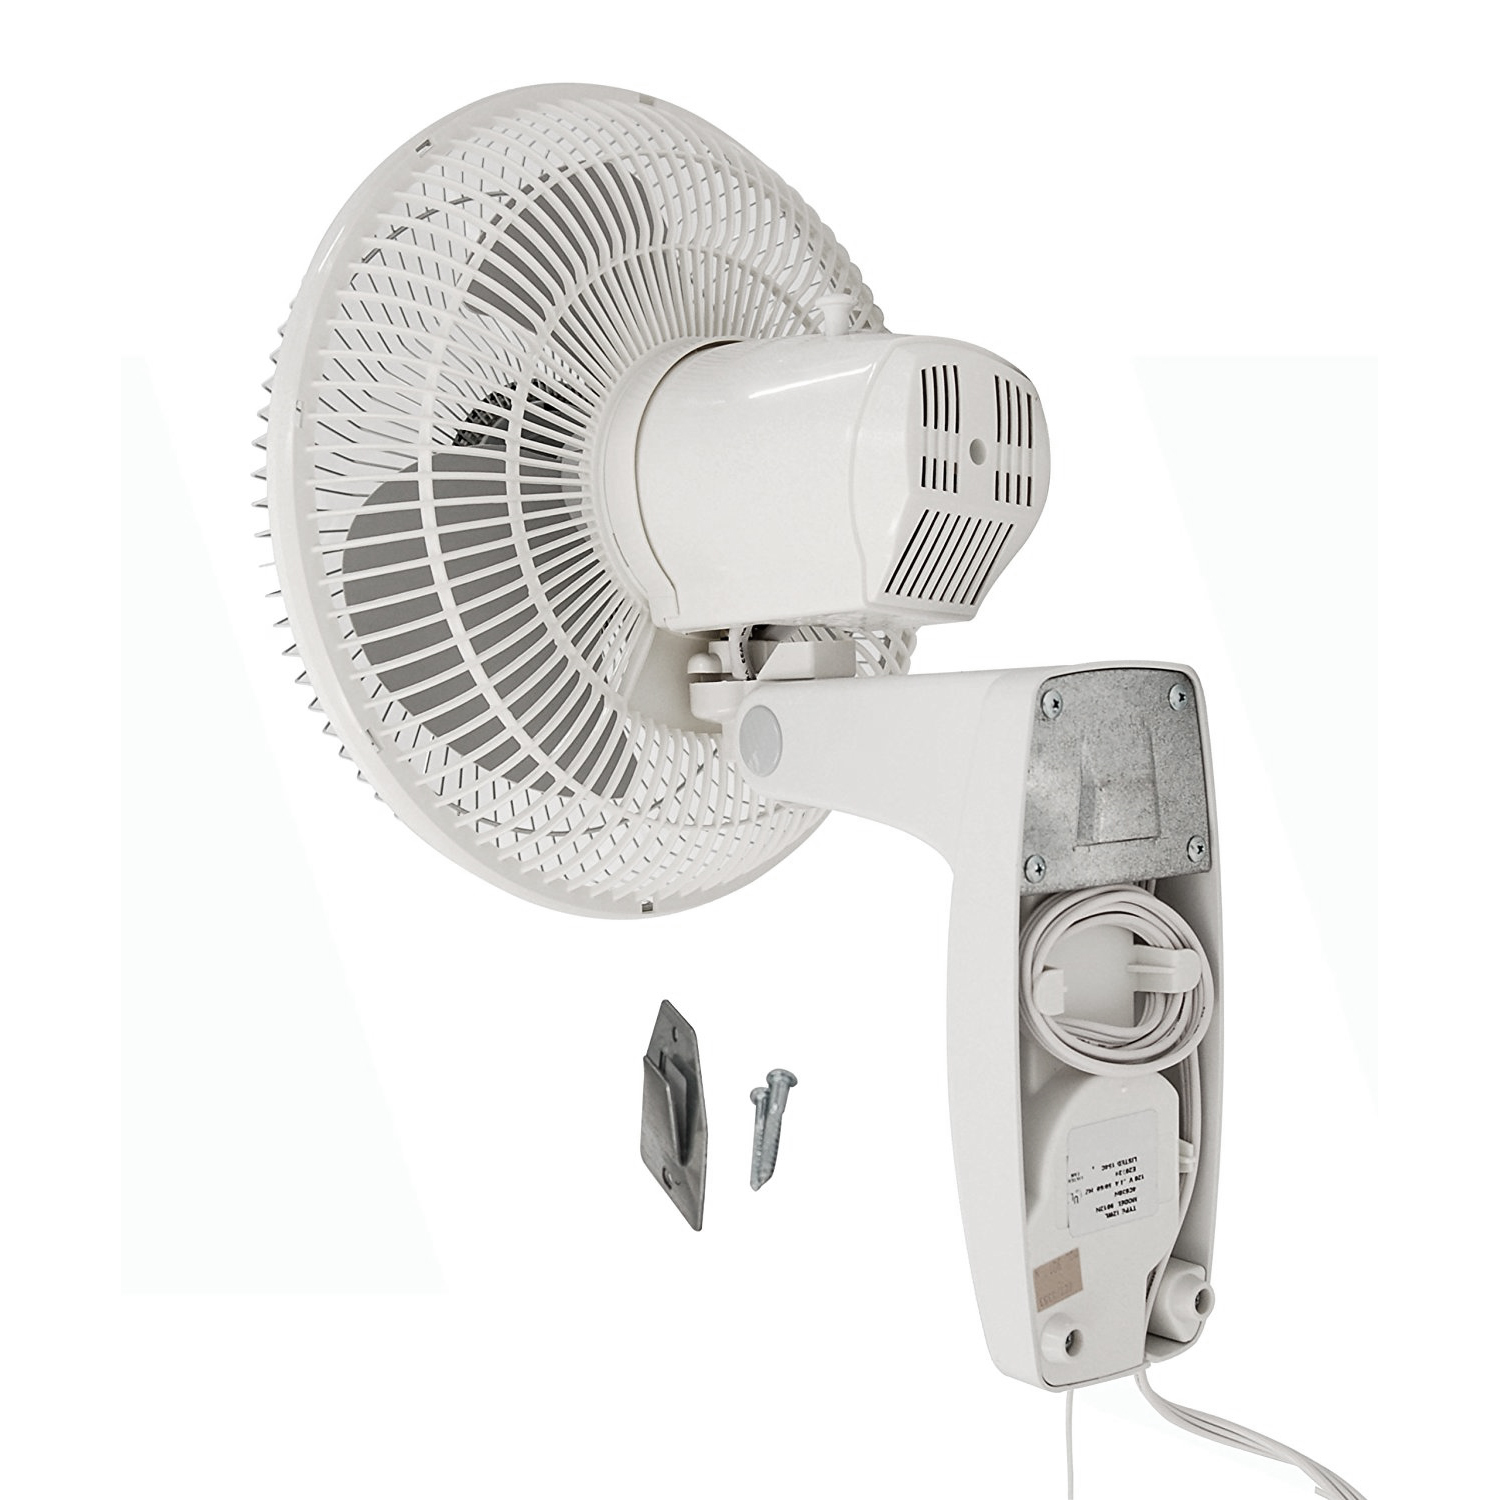 Brackets For Wall Mount Oscillating Fans : Air king inch residential grade oscillating blade